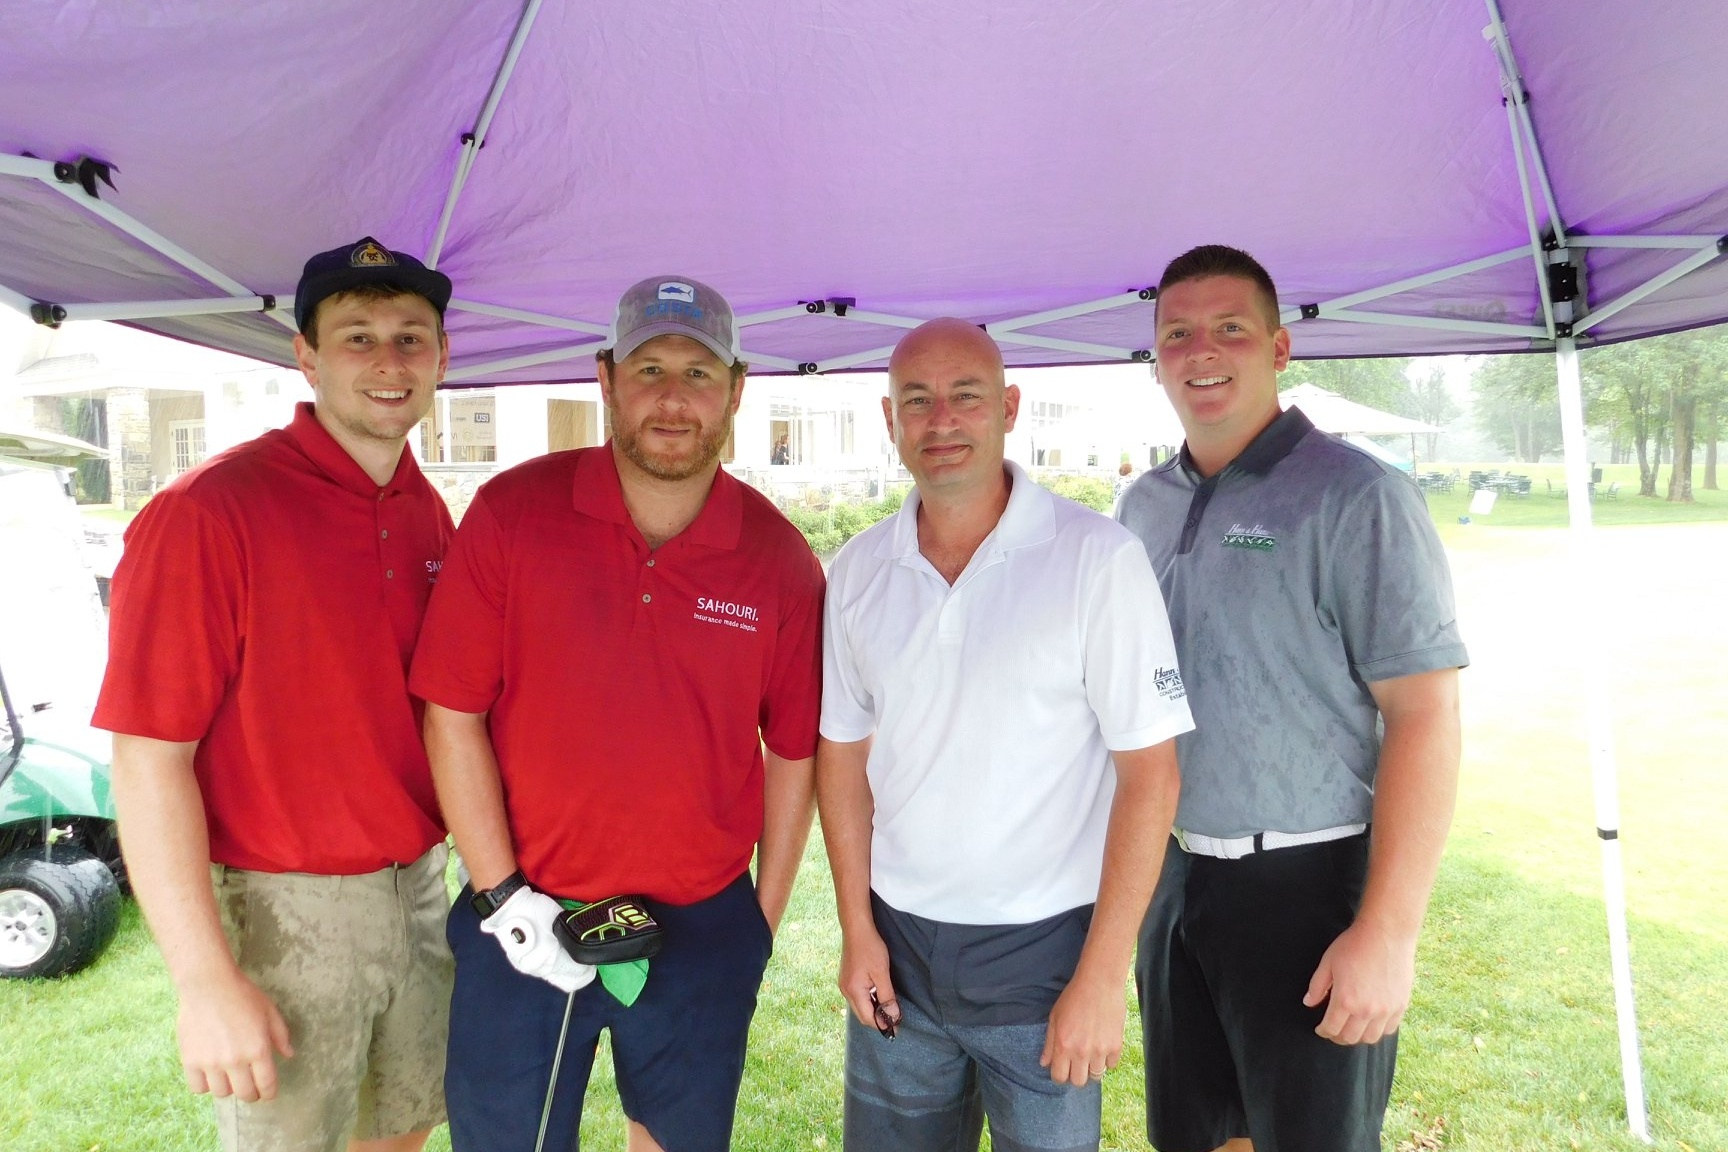 sahouri-insurance-cai-golf-tournament-chase-hudson-allen-hudson-808511-edited